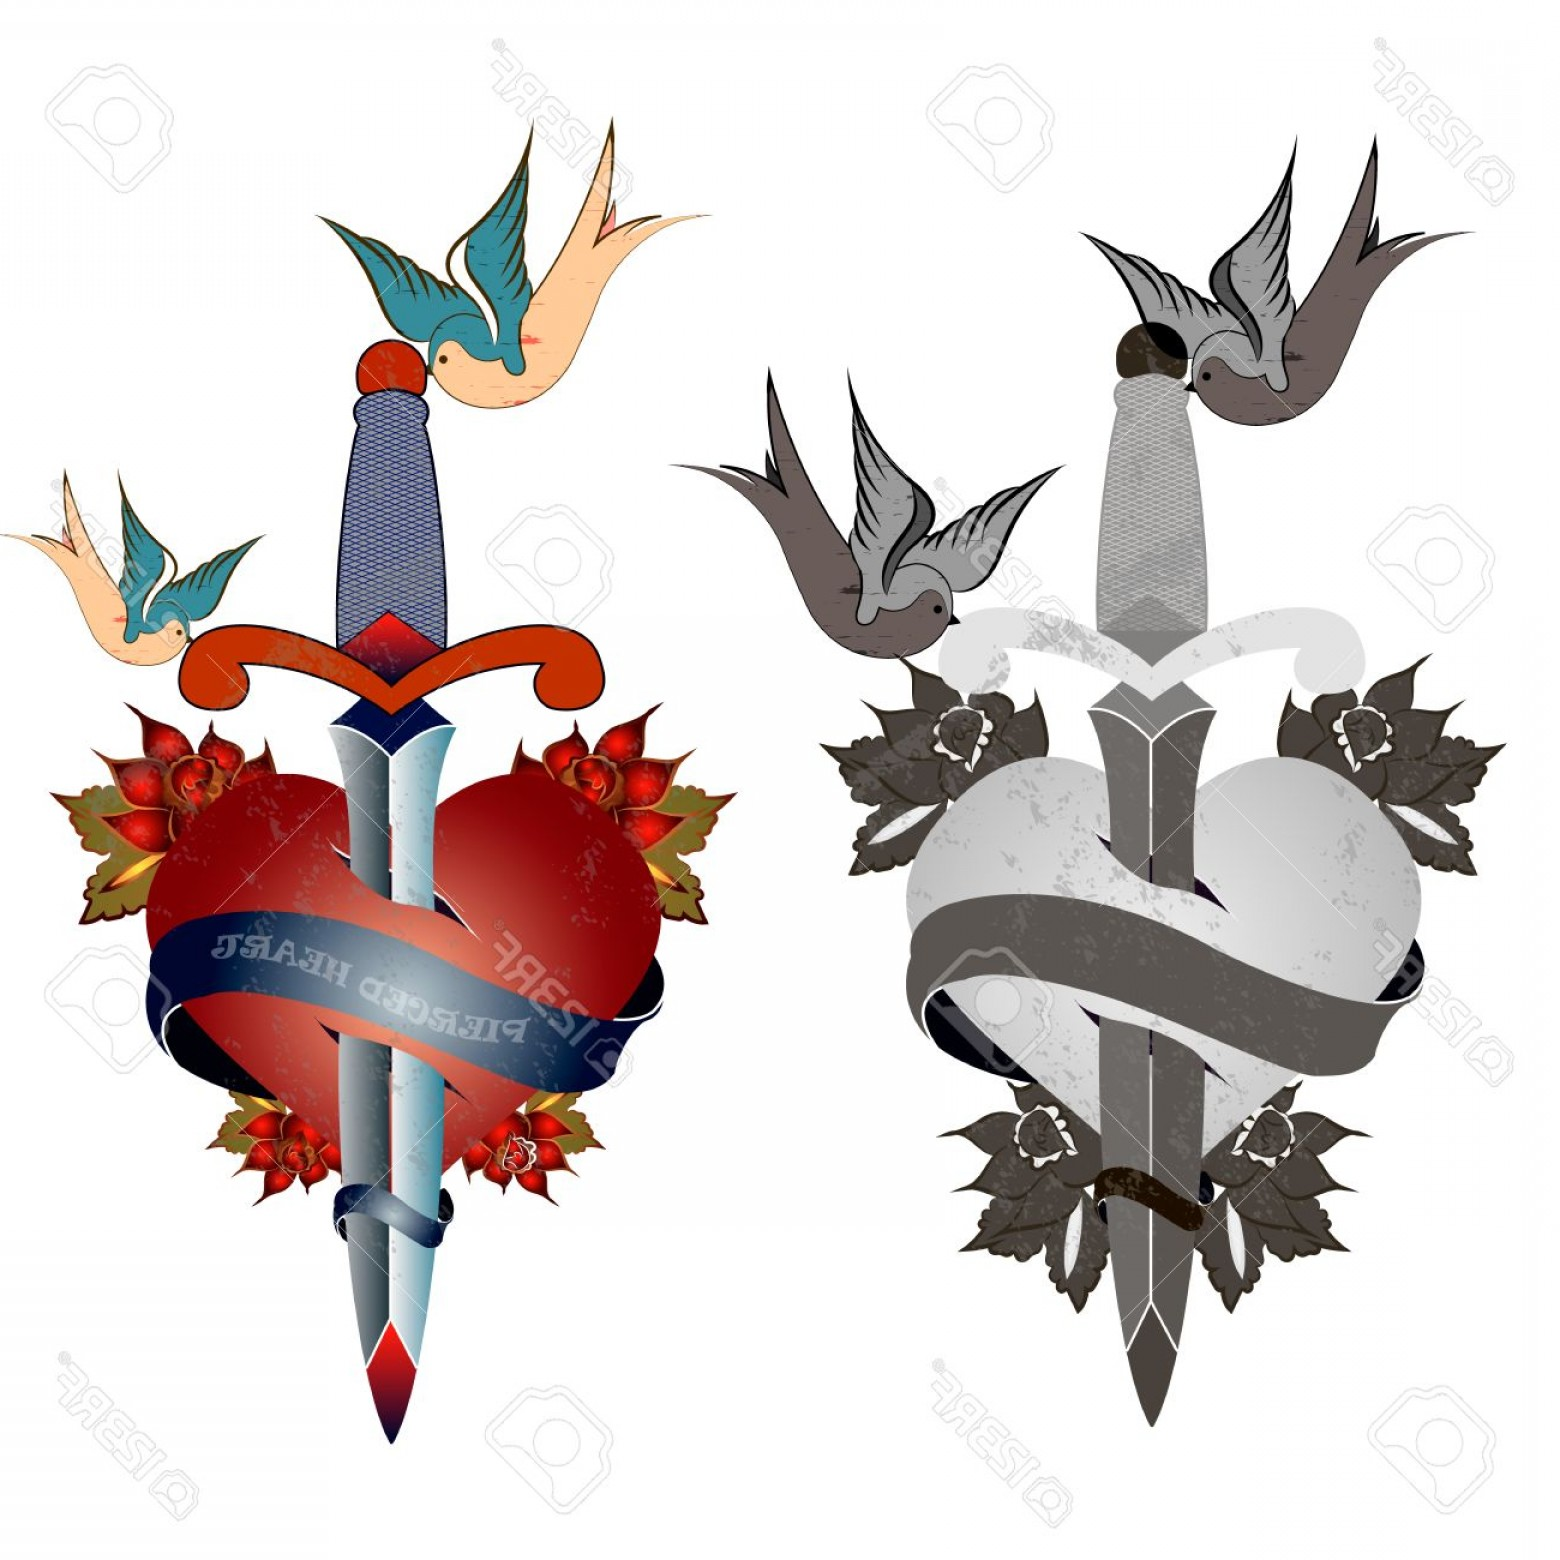 Old School Airplane Fighter Silhouette Vector: Photostock Vector Style Tattoo Old School Grunge Heart Pierced With A Sword Birds Flowers Black And White And Color